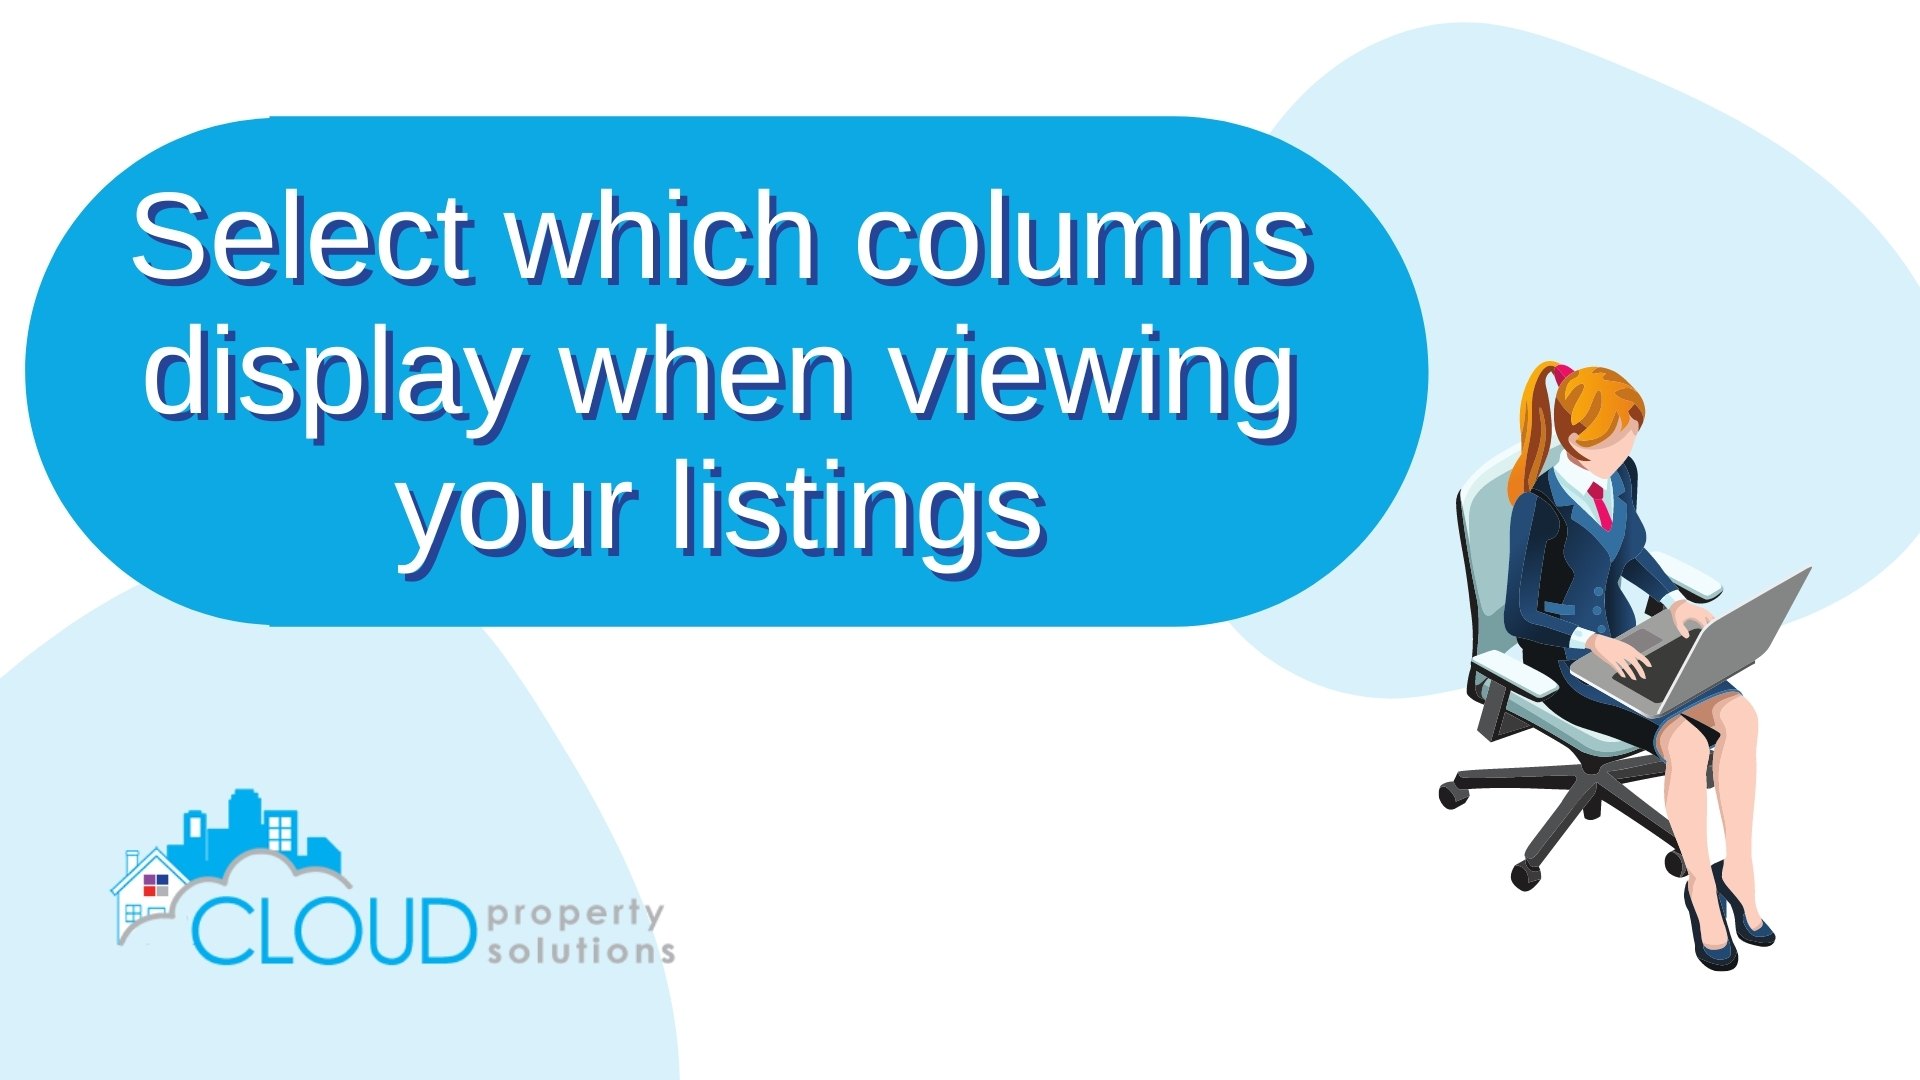 Select which columns display when viewing your listings